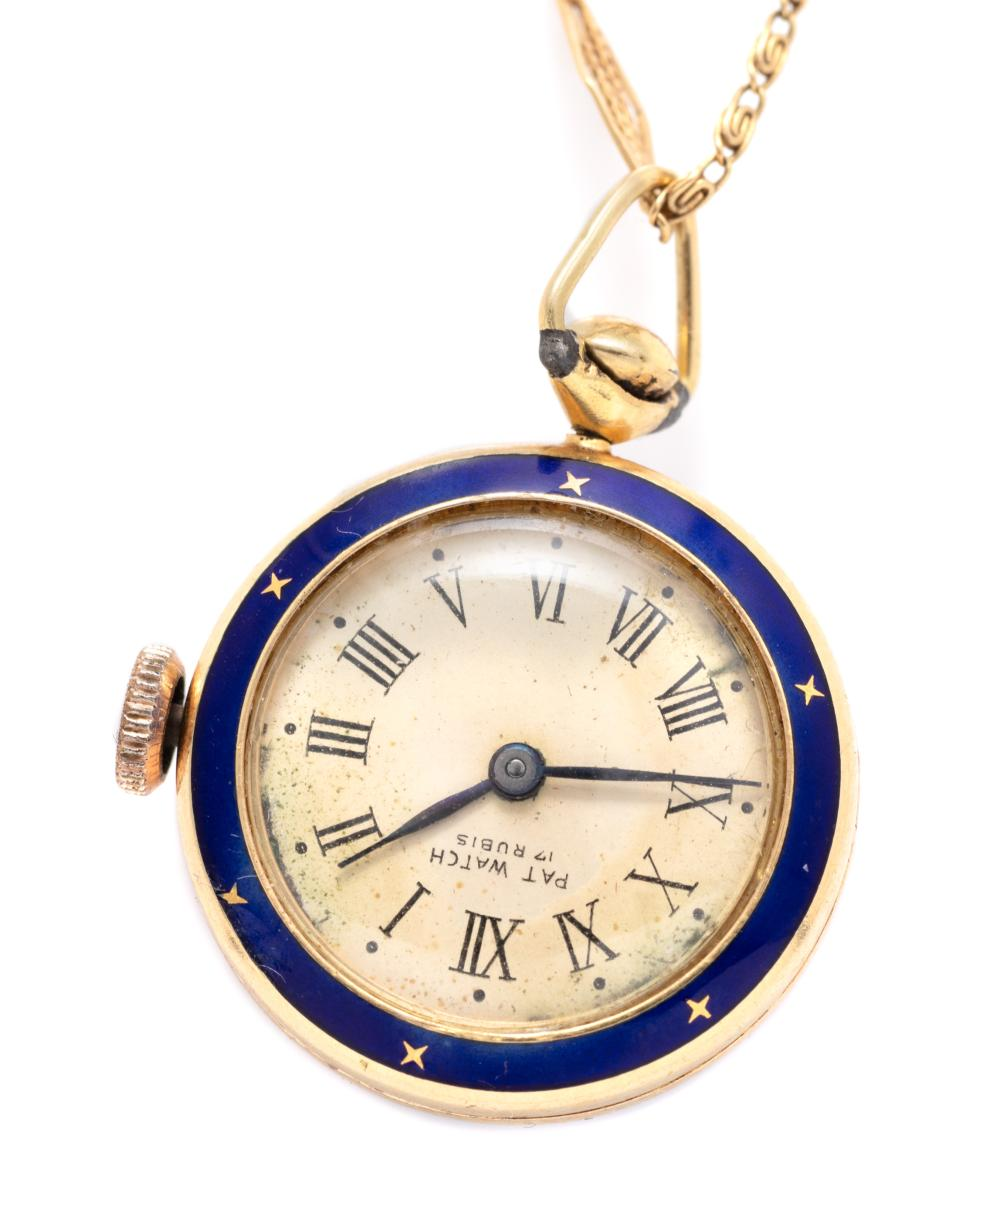 A LADY'S 18CT GOLD ENAMELLED PENDANT WATCH ON CHAIN; champagne dial signed, PAT WATCH, with Roman numerals, blue enamel bezel, case...